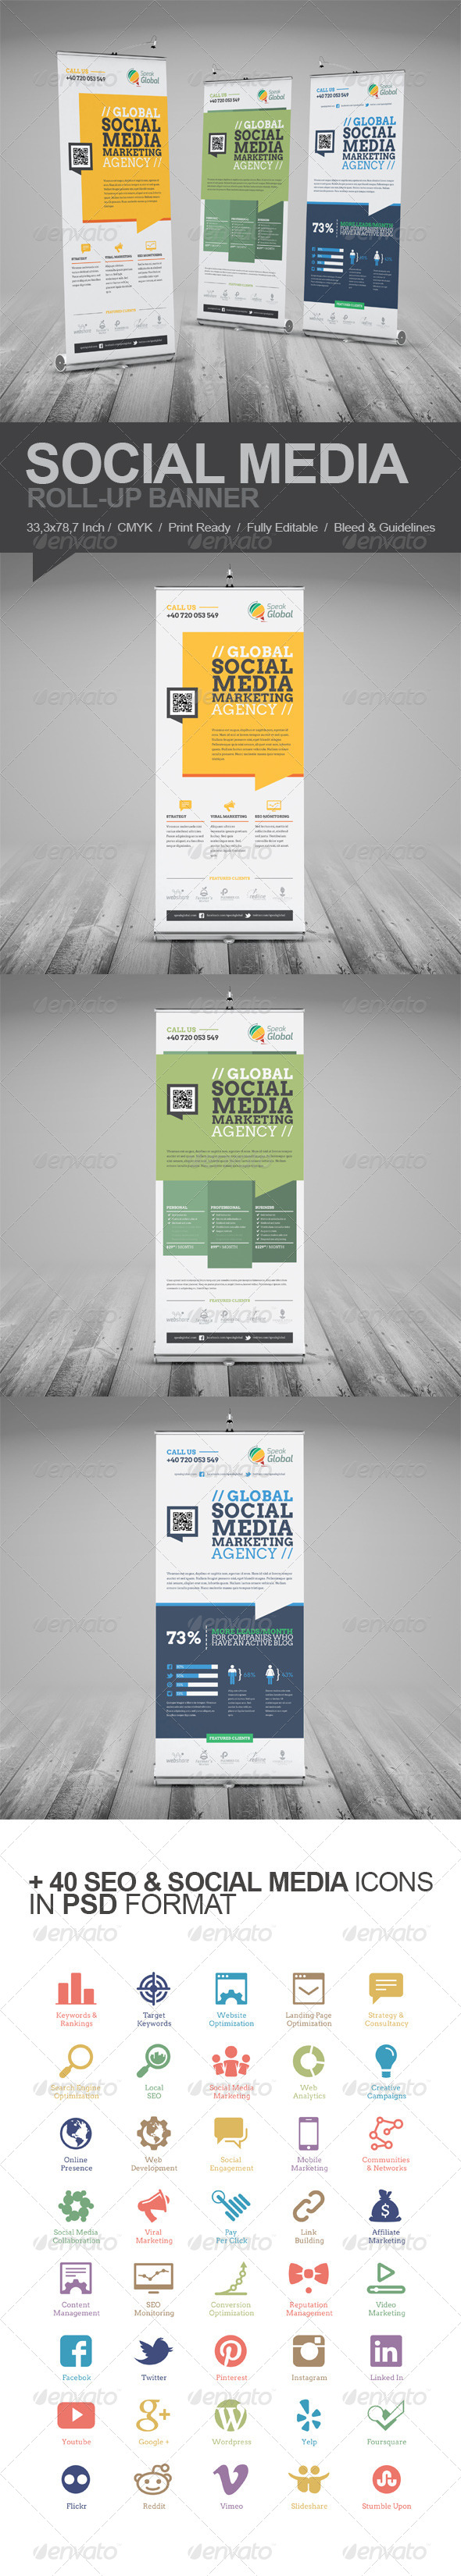 Social Media Marketing Roll-Up Banner - Signage Print Templates